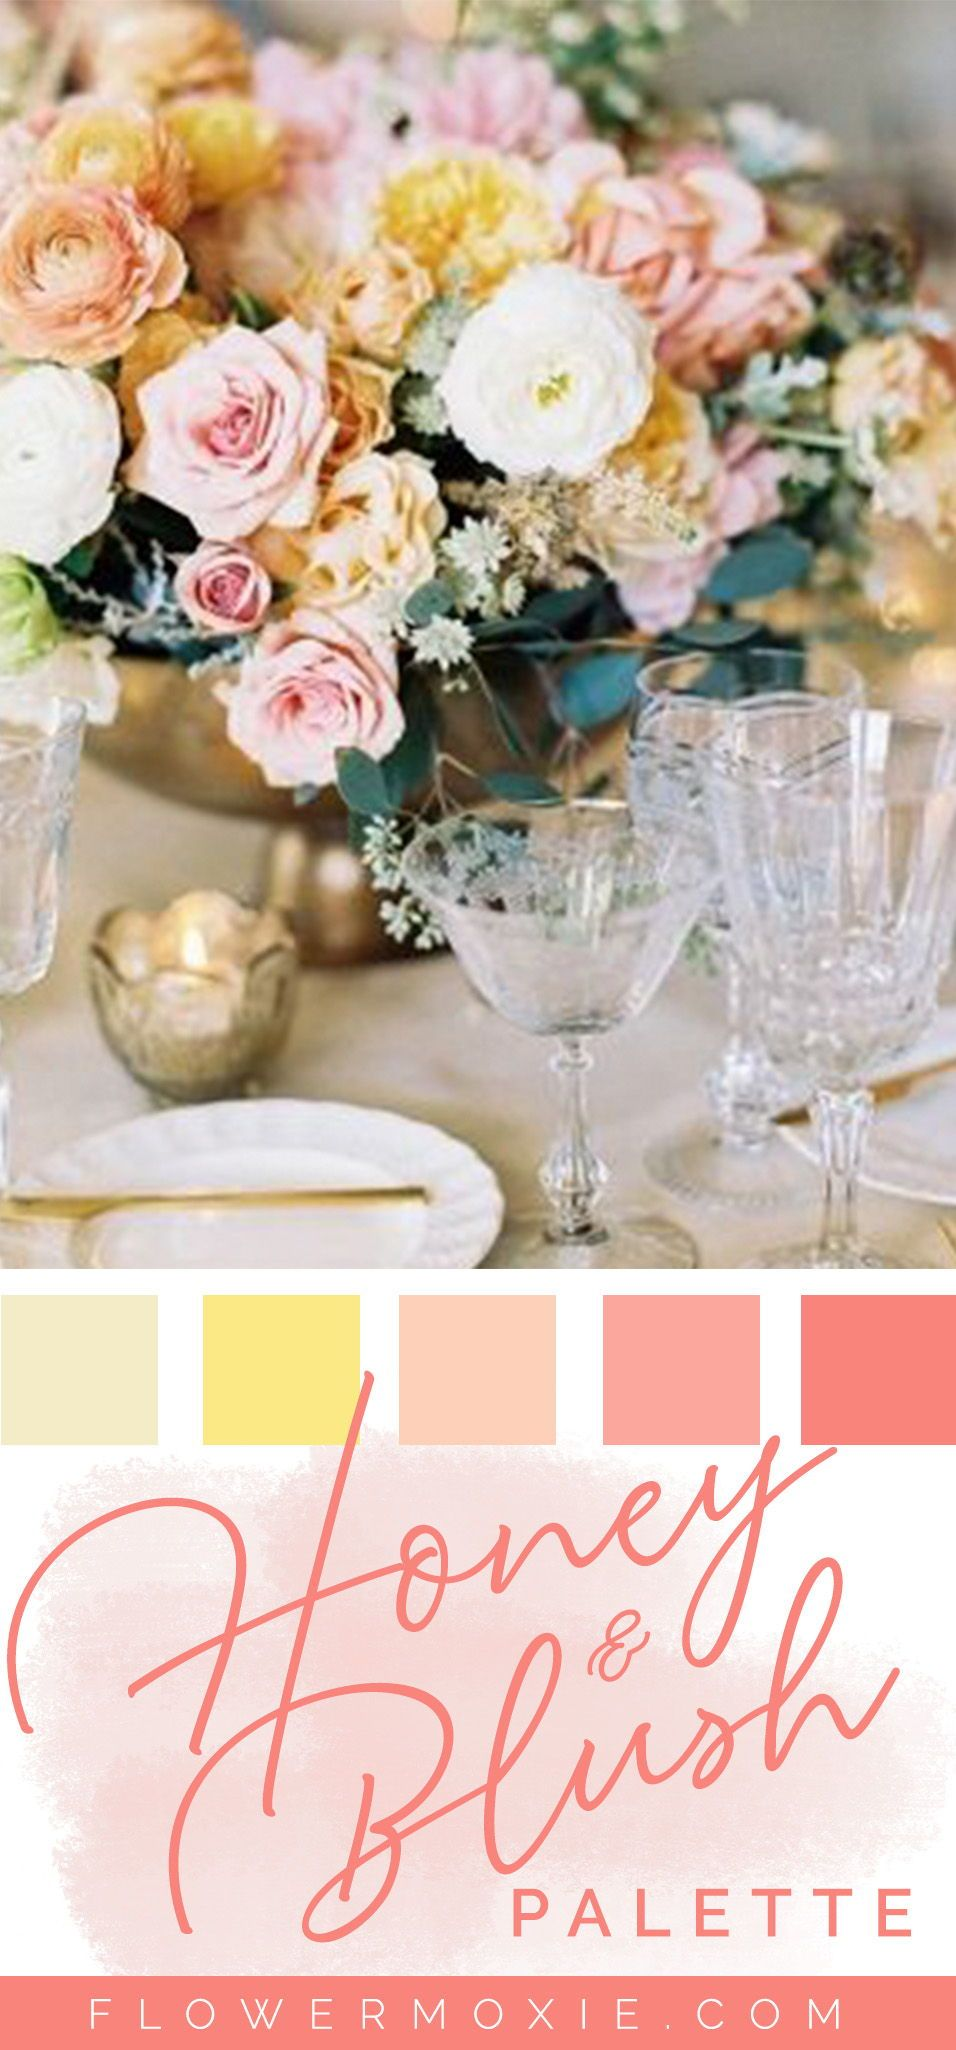 Get Inspired By Our Wedding Flower Packages Mix Match Flowers To Achieve The Look You Wa Wedding Flower Packages Online Wedding Flowers Pink Wedding Flowers